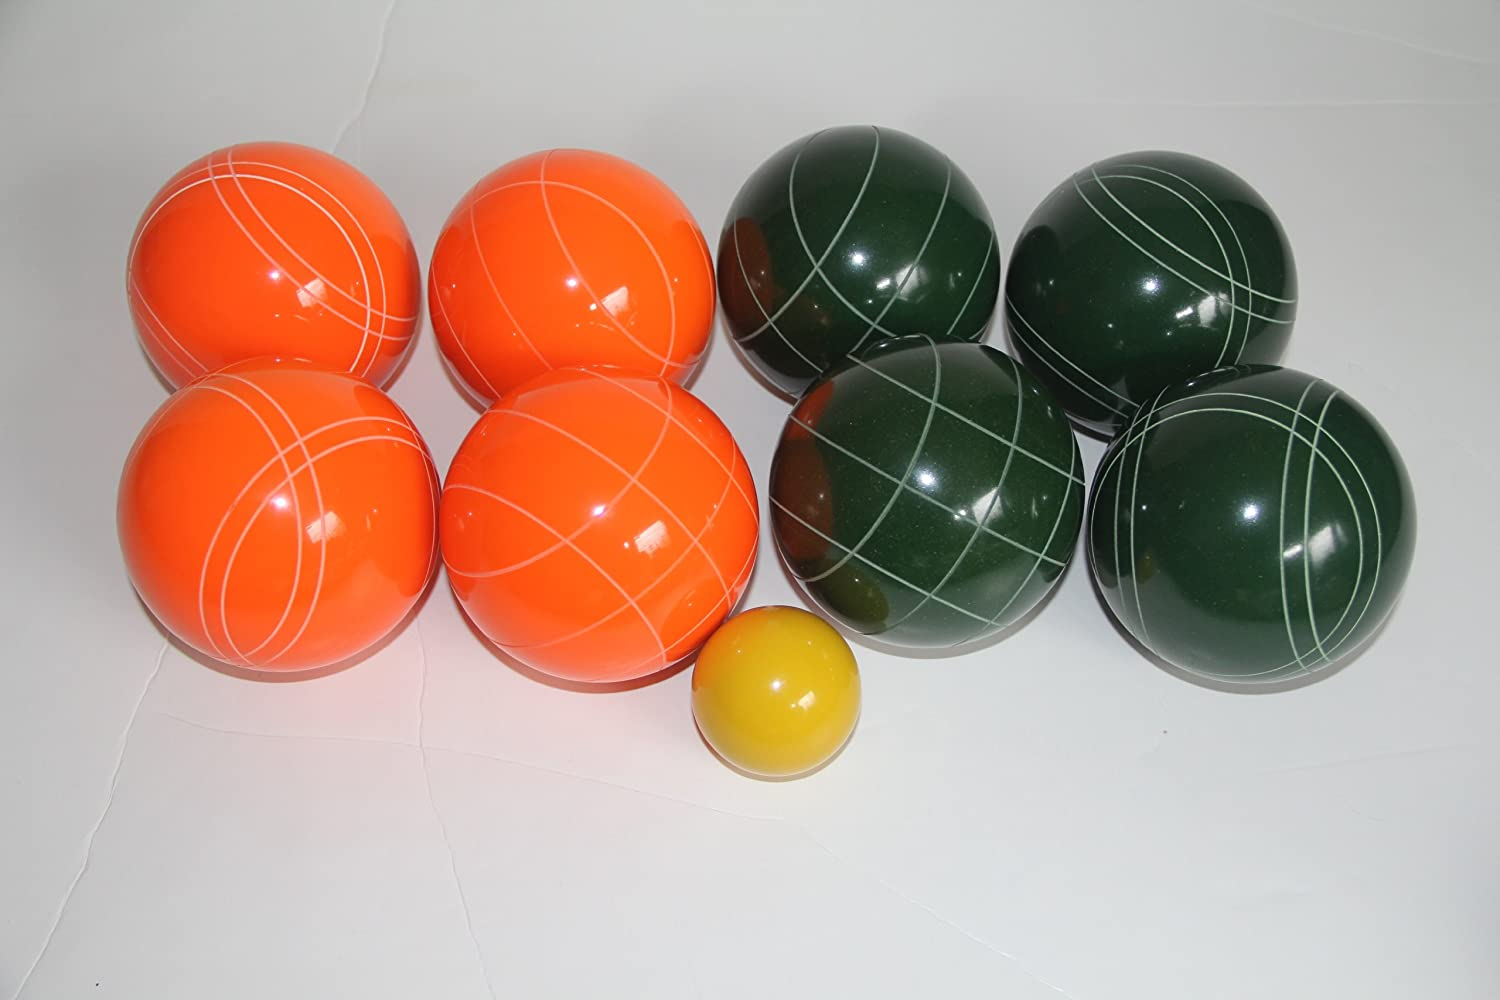 Premium Quality EPCO Tournament Bocce Set – 110mm Orange and Green Bocce Ball… günstig kaufen